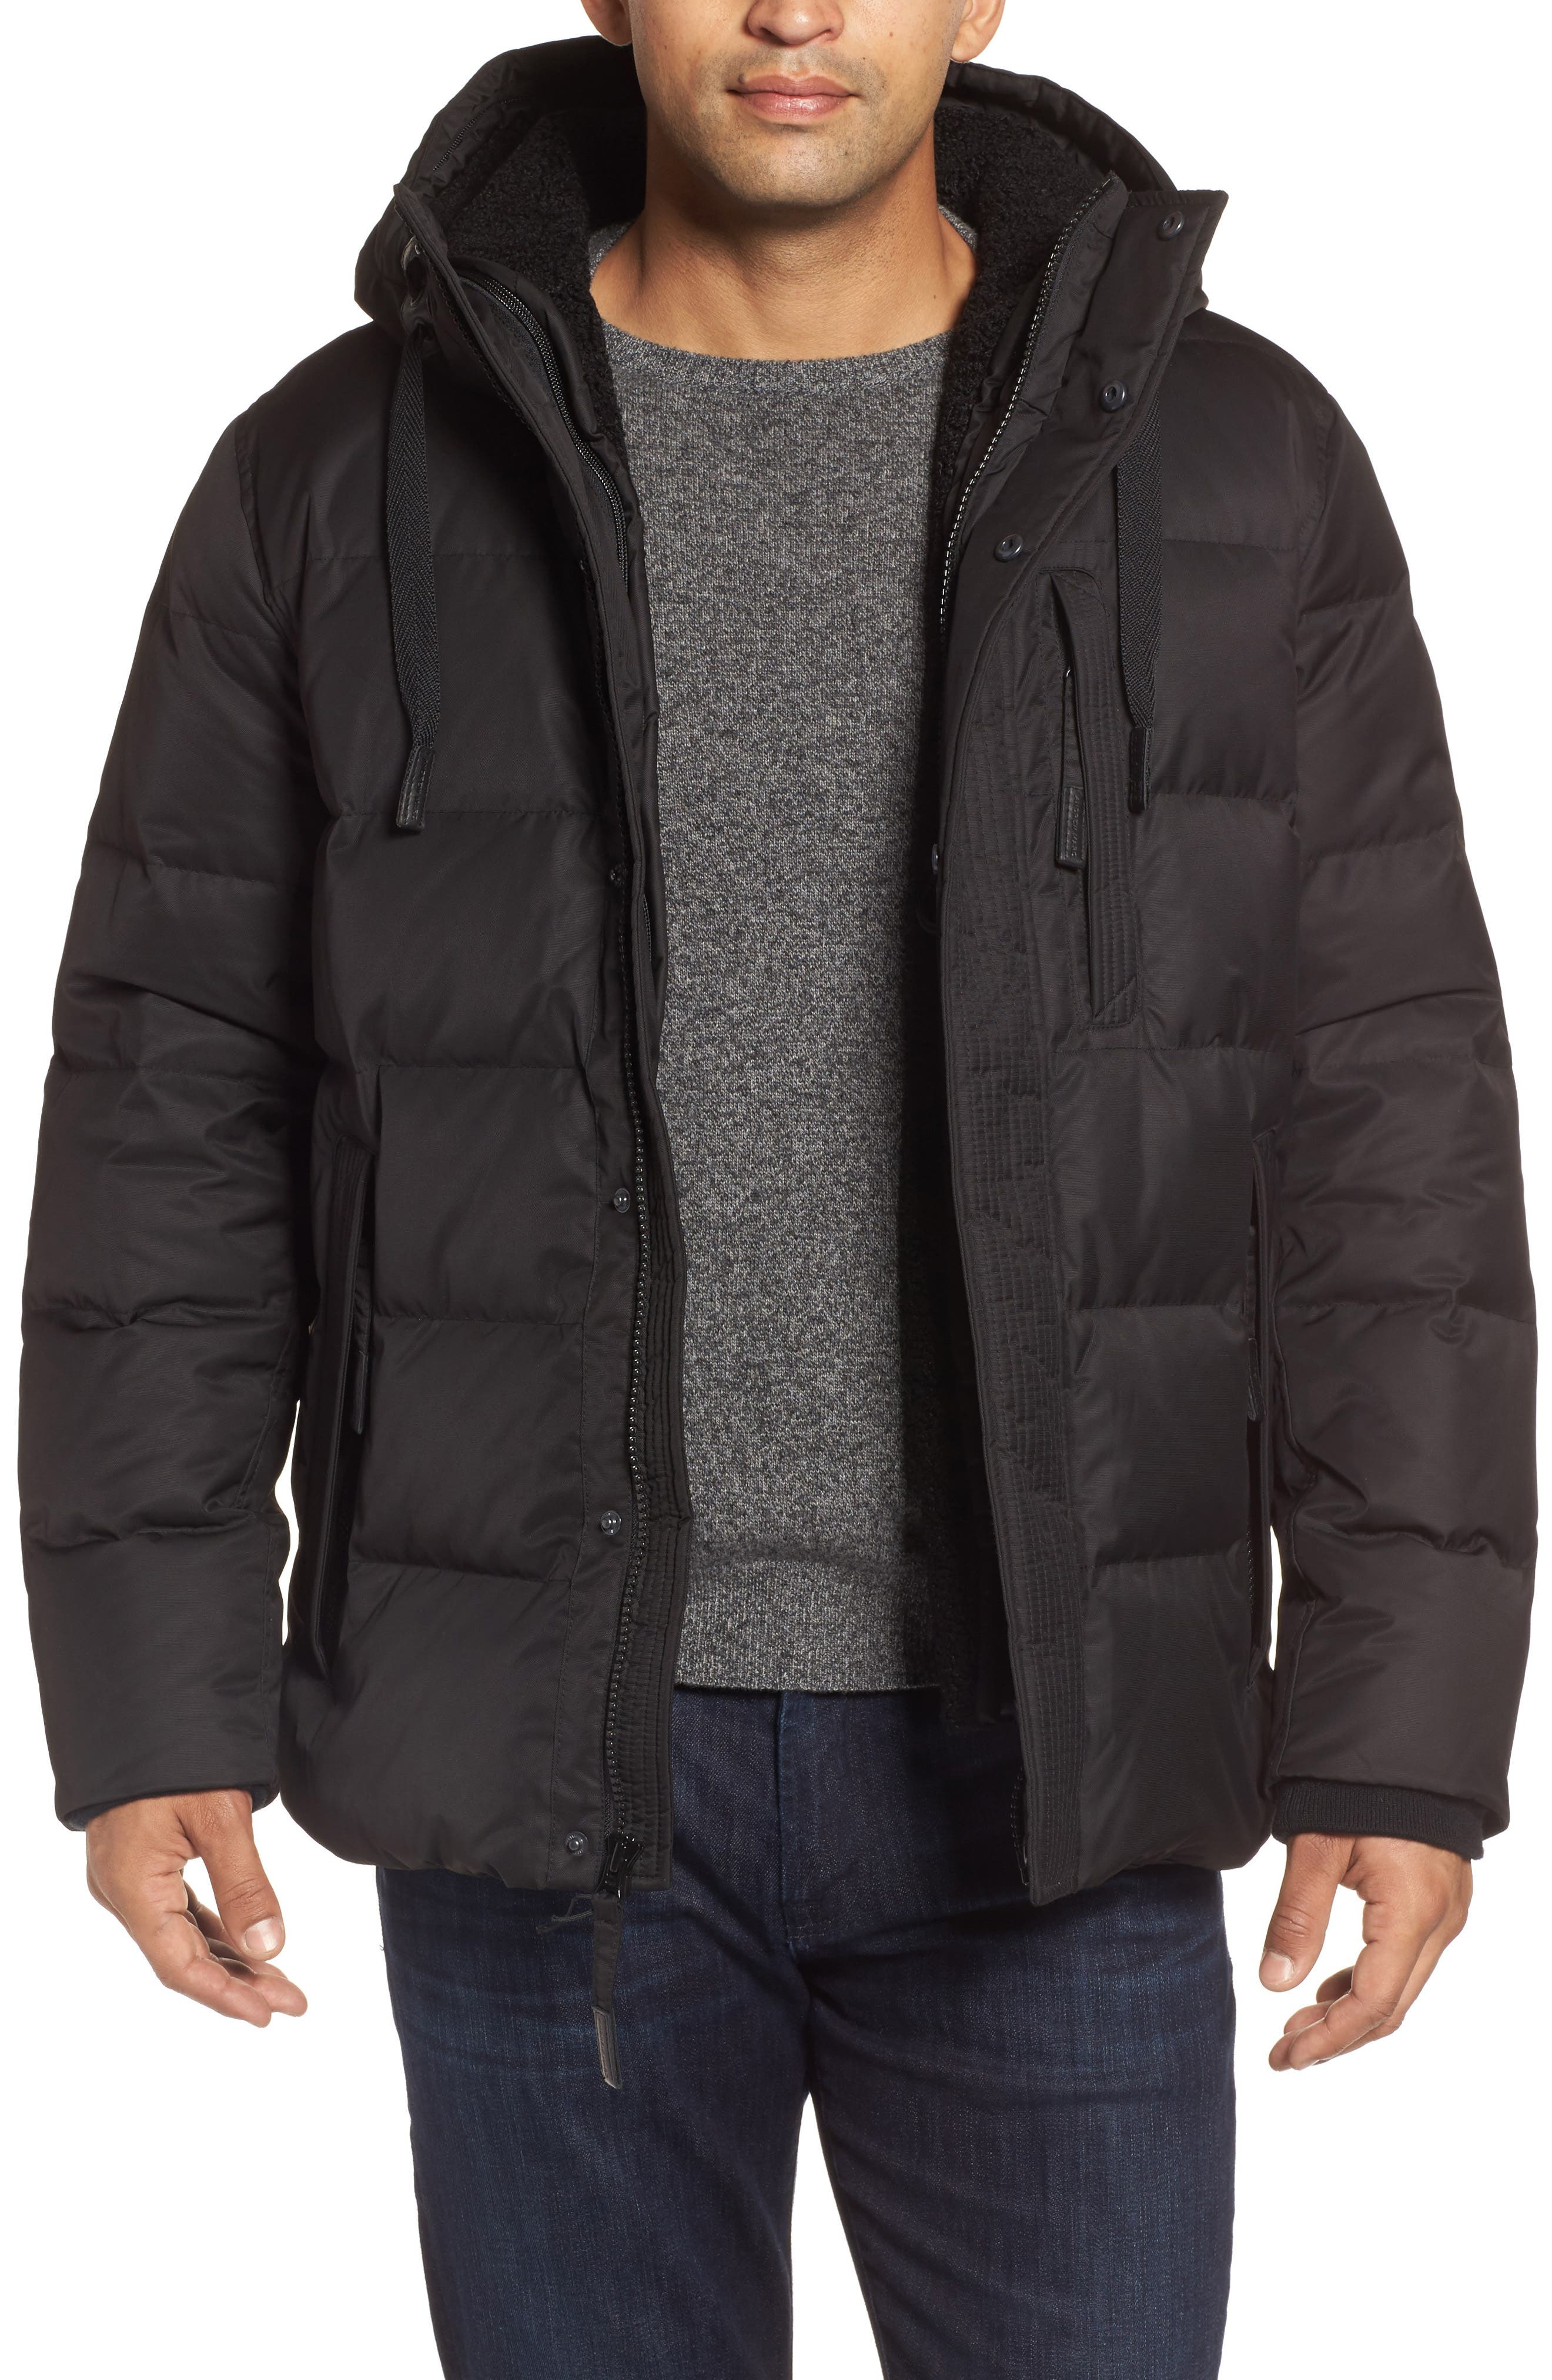 Main Image - Andrew Marc Groton Slim Down Jacket with Faux Shearling Lining